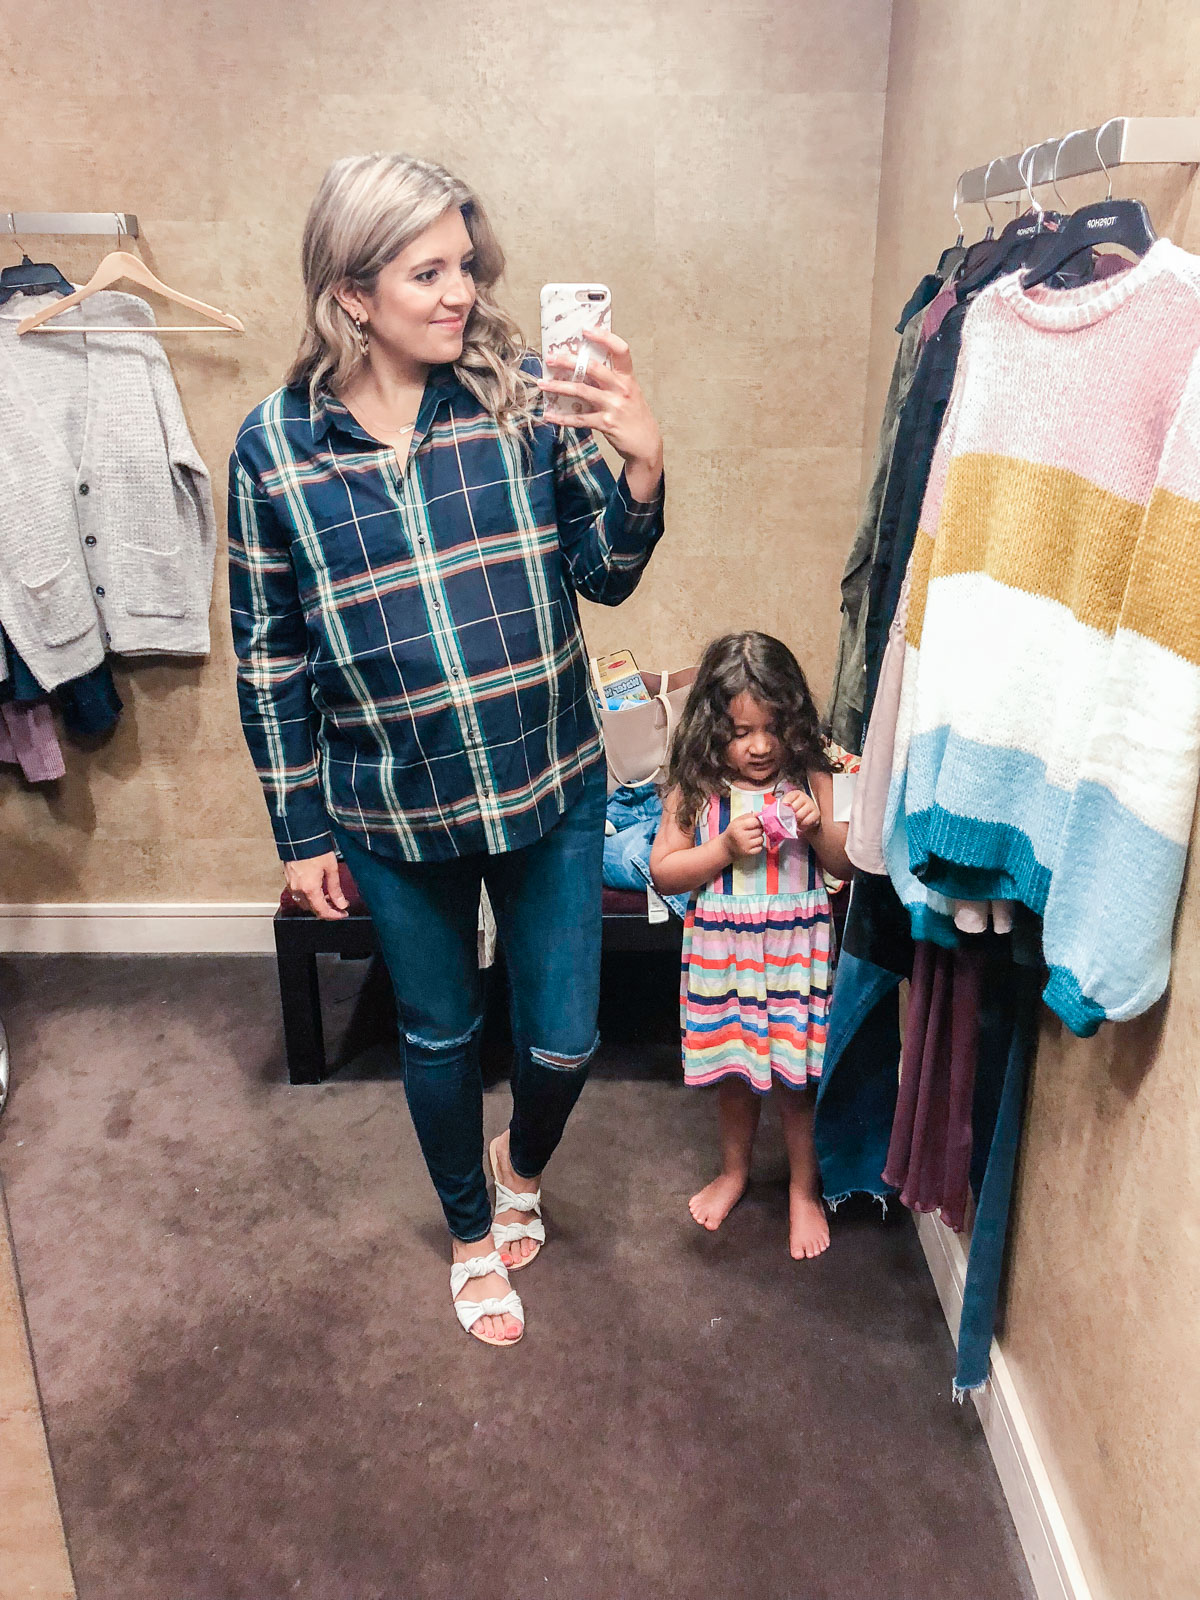 madewell plaid top - Nordstrom anniversary sale 2018 try-on session: over 25 items reviewed for fit and size! | bylaurenm.com